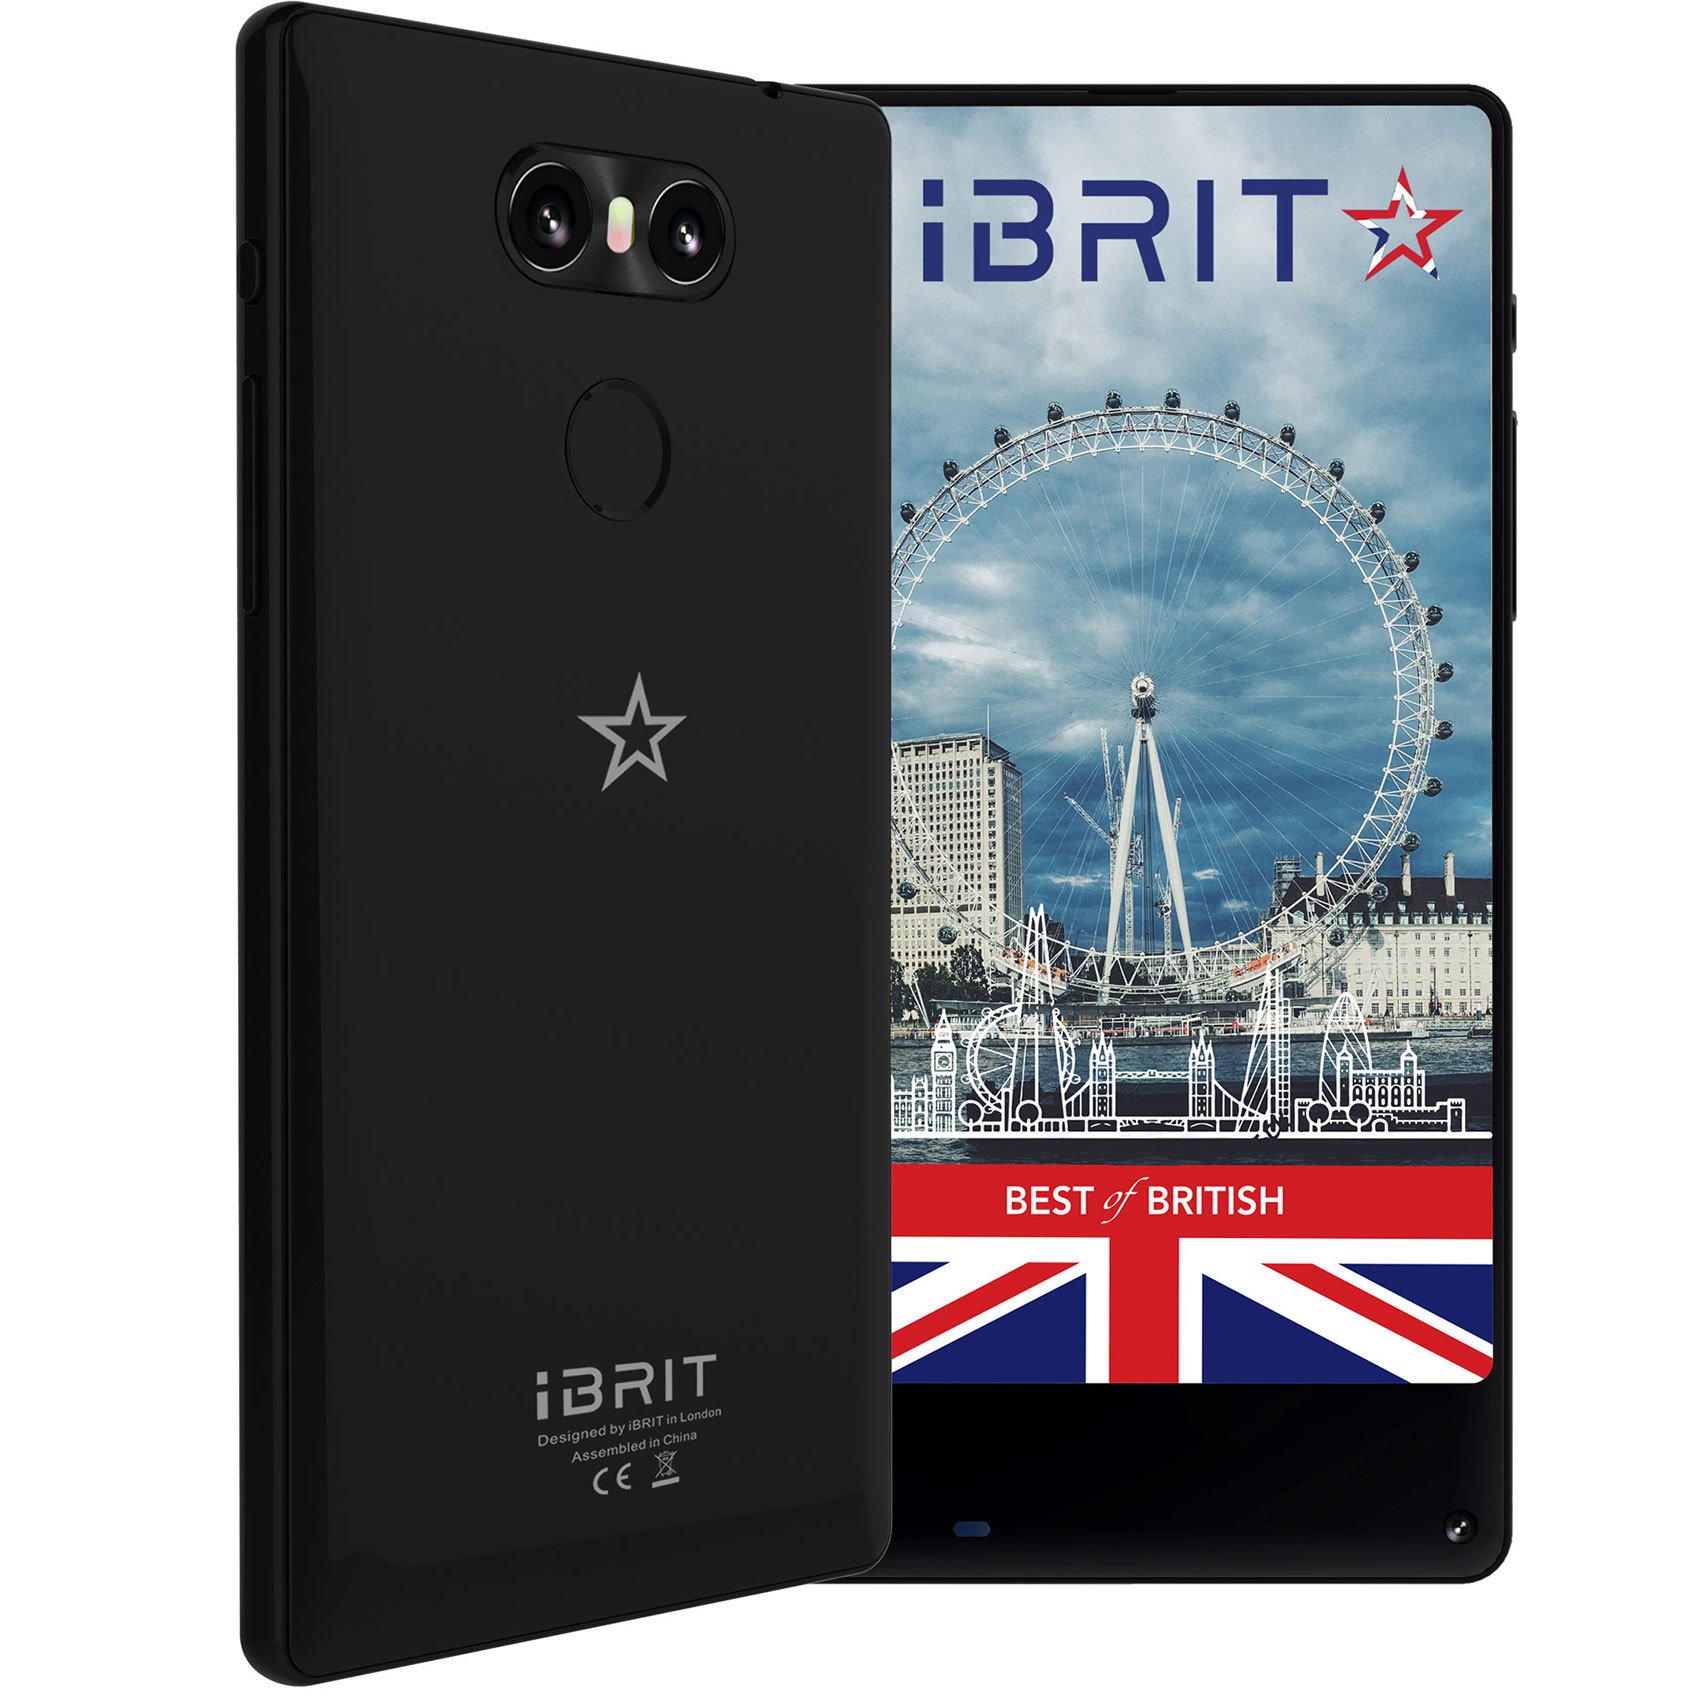 IBRIT HORIZON BLACK DS 4G 32GB